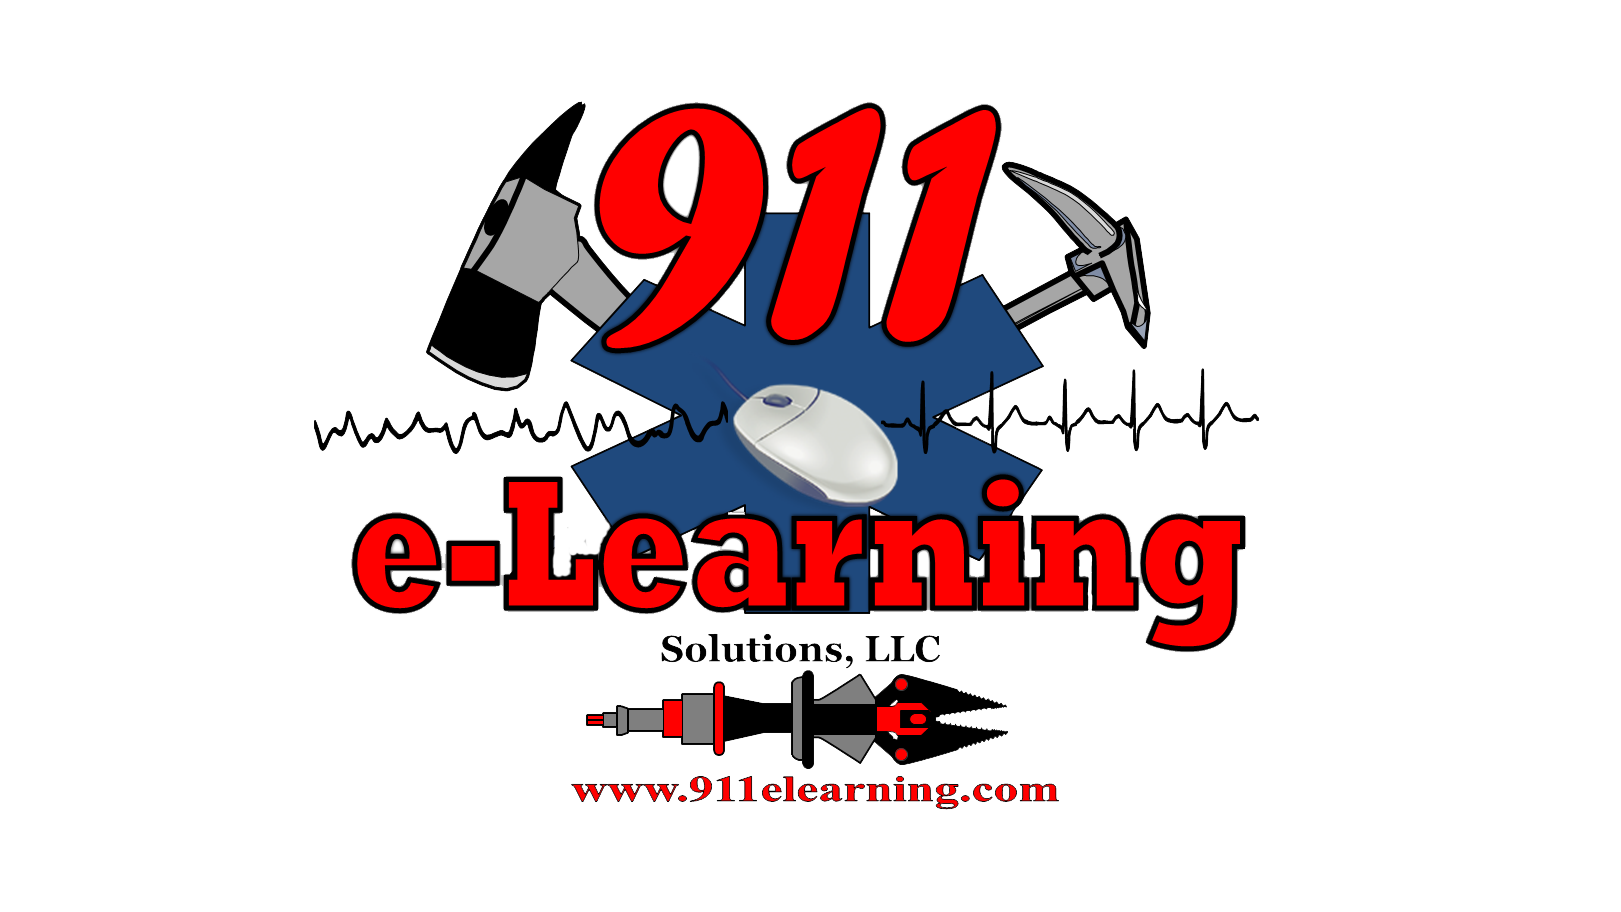 Ibsc bcctpc approved courses 911 e learning solutions llc malvernweather Image collections